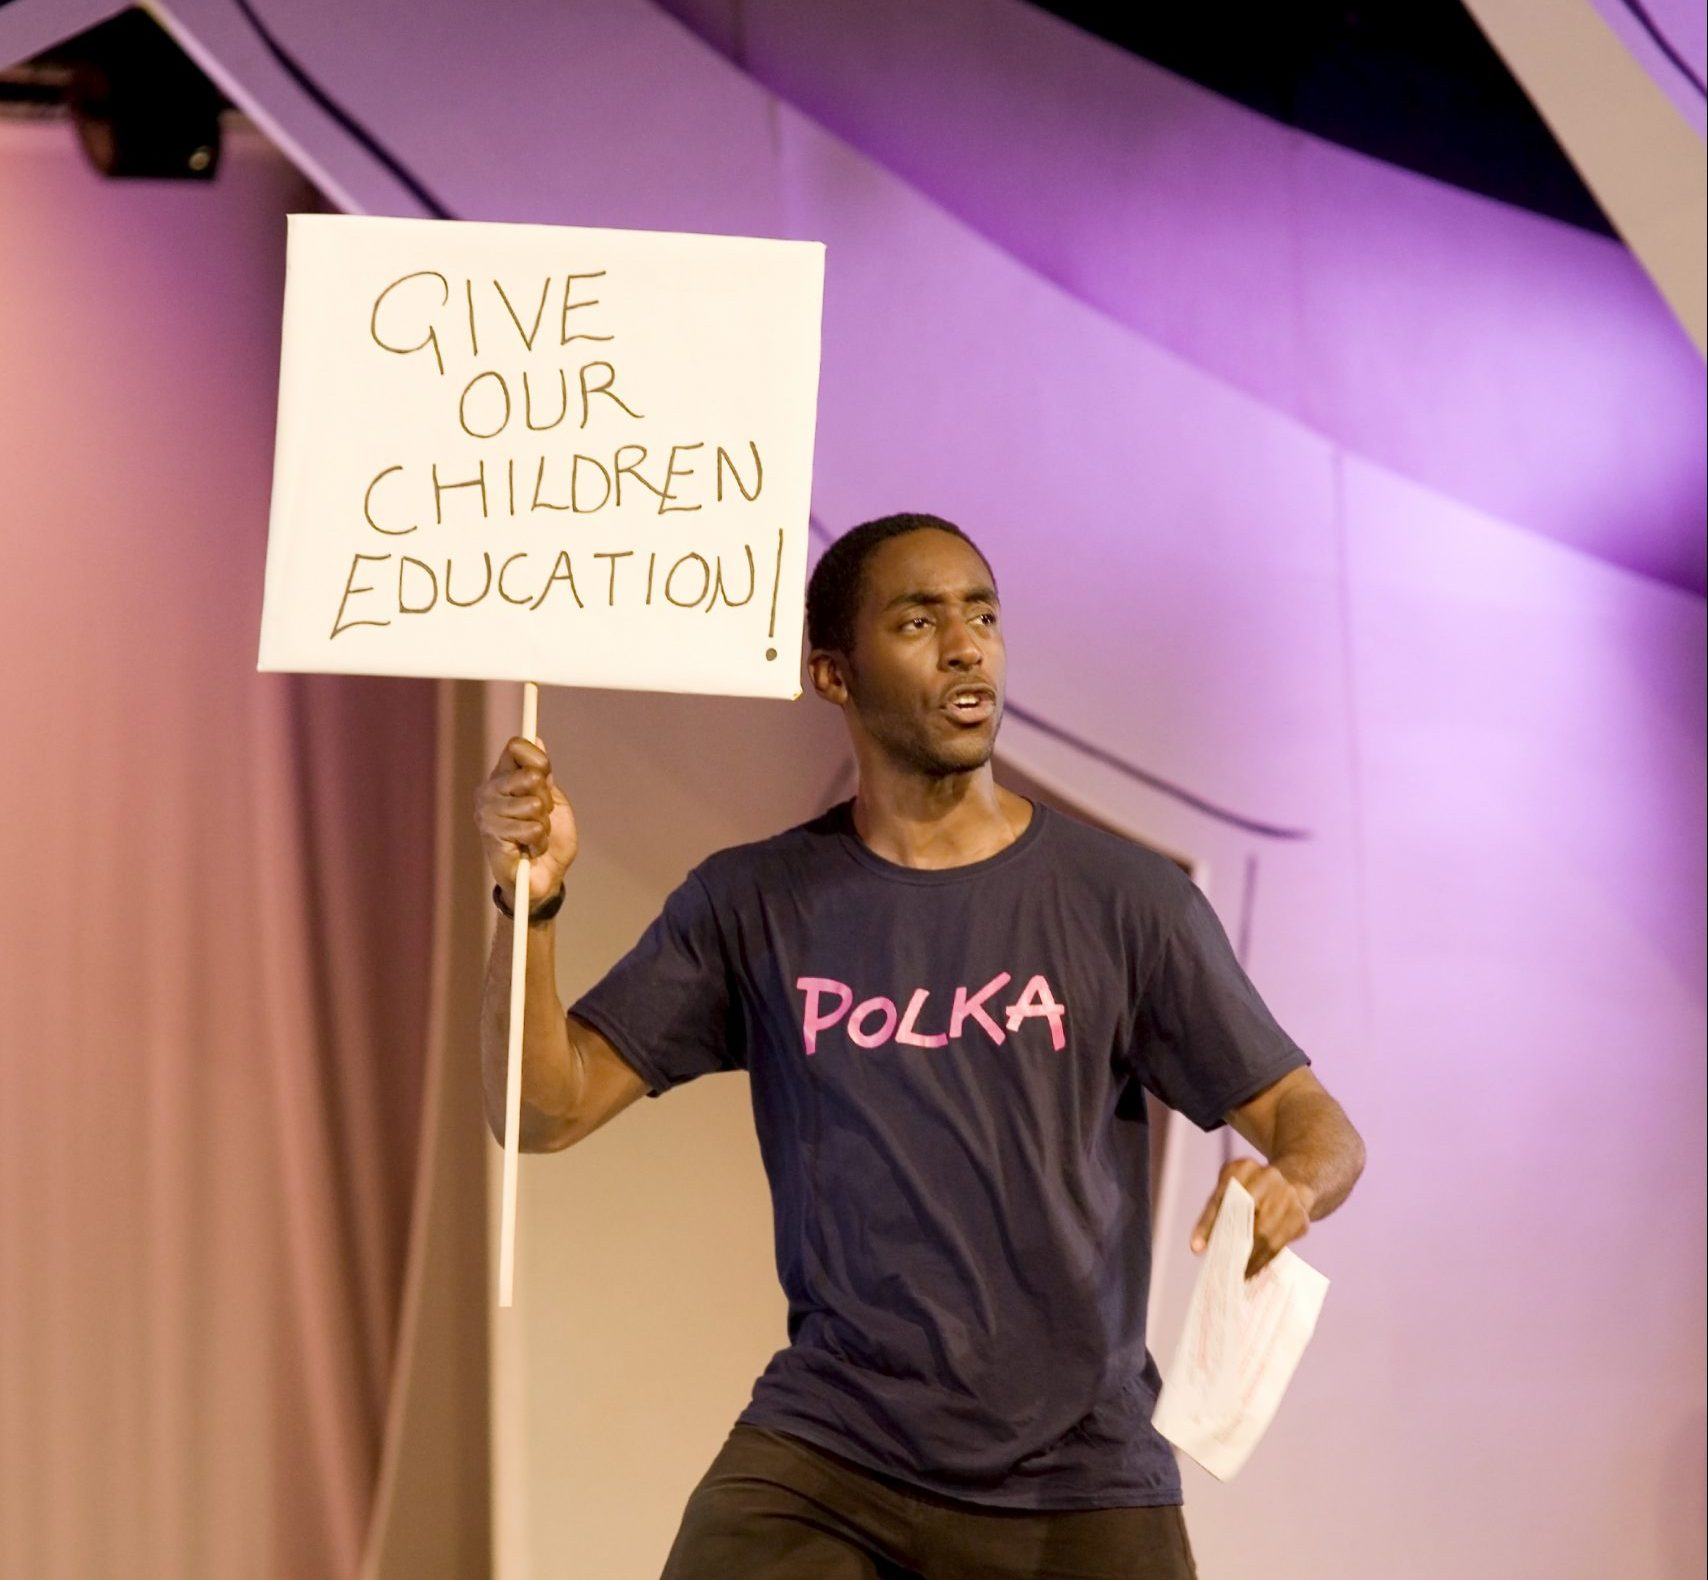 Actor on stage holding a sign which says 'give our children education'